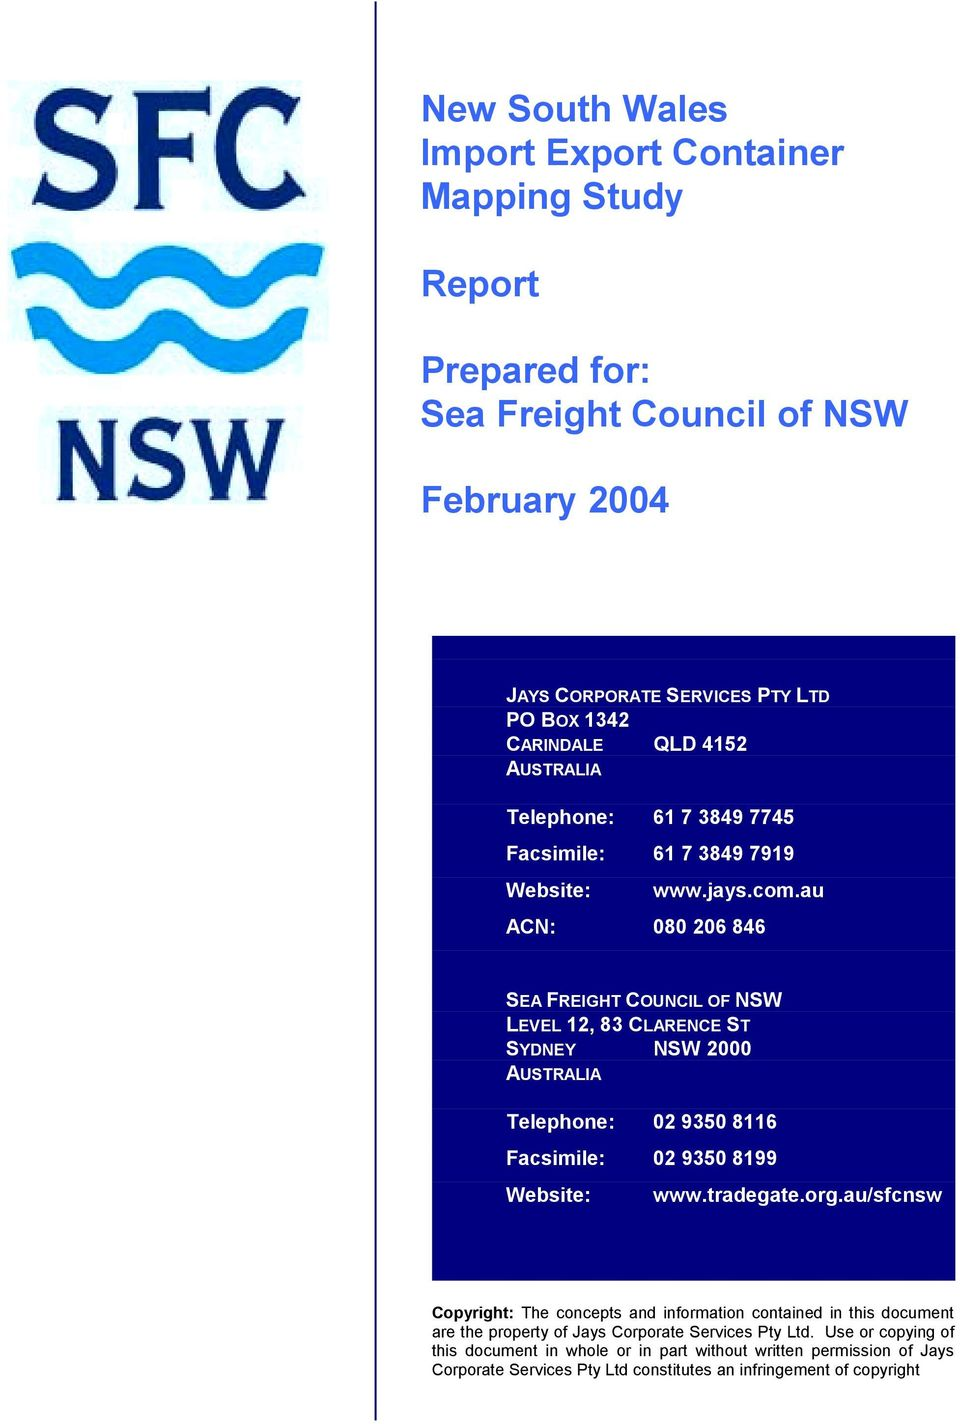 au ACN: 080 206 846 SEA FREIGHT COUNCIL OF NSW LEVEL 12, 83 CLARENCE ST SYDNEY NSW 2000 AUSTRALIA Telephone: 02 9350 8116 Facsimile: 02 9350 8199 Website: www.tradegate.org.